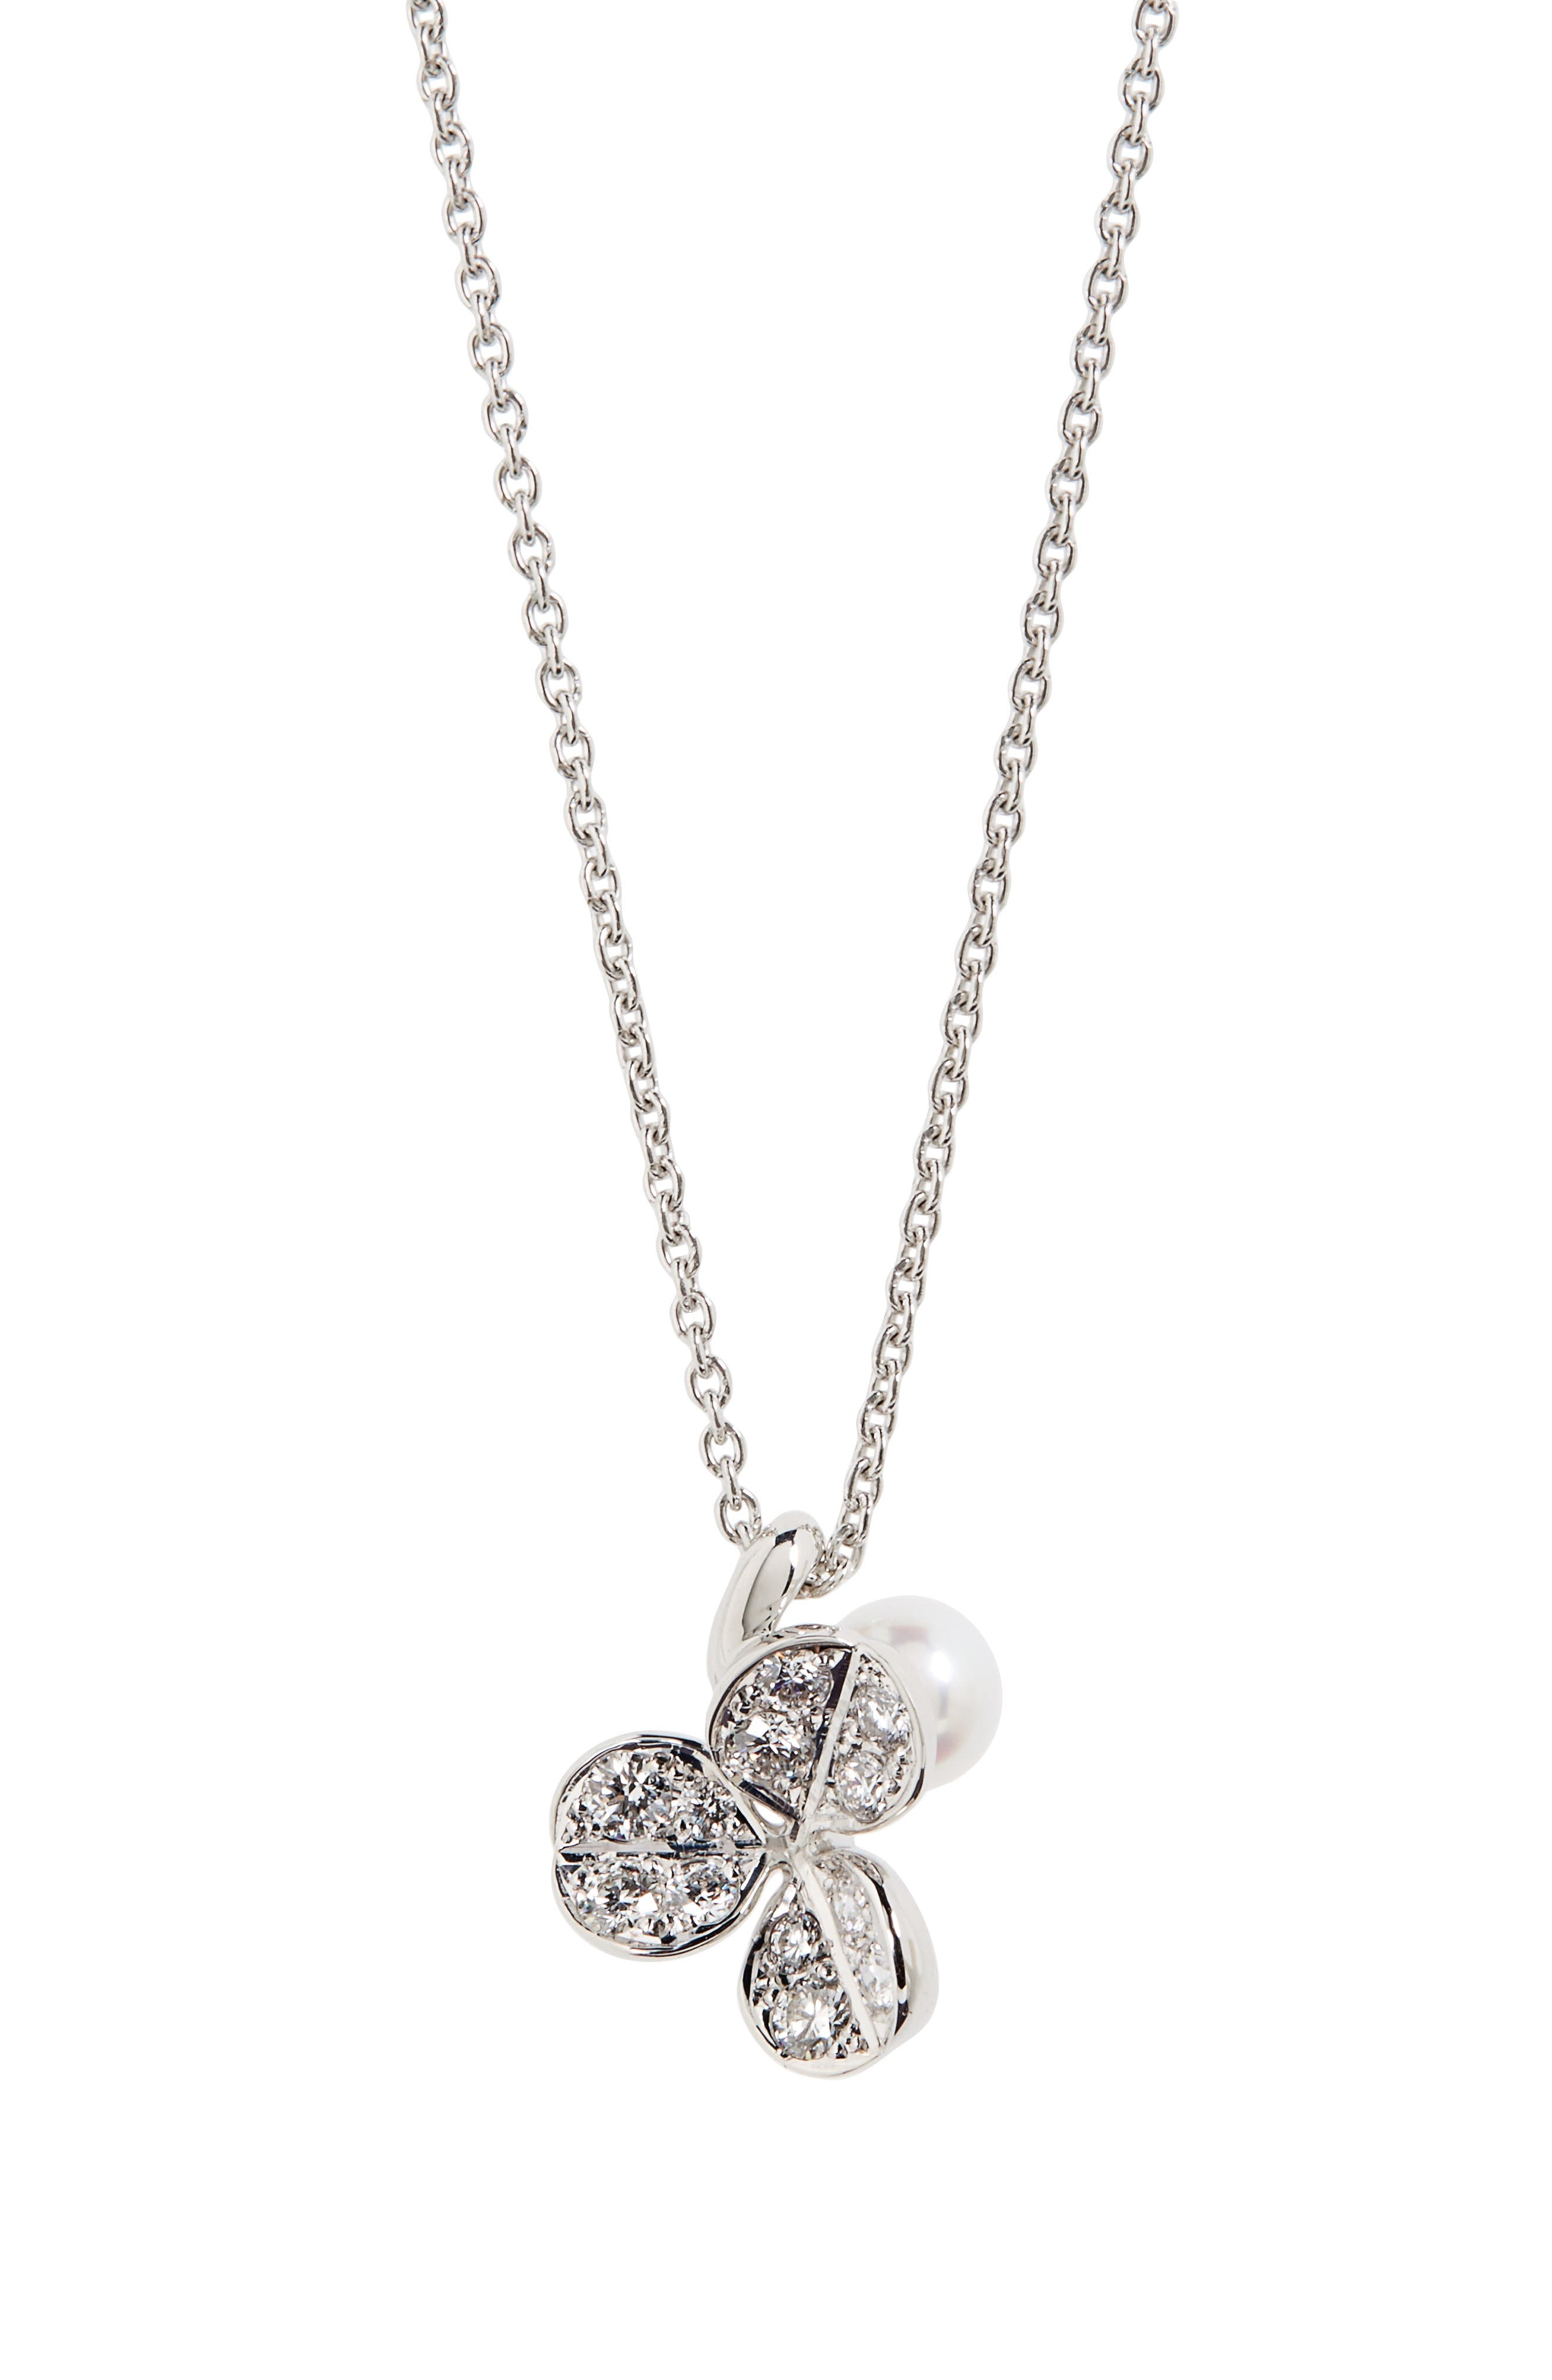 Main Image - Mikimoto Fortune Leaves Pearl & Diamond Pendant Necklace